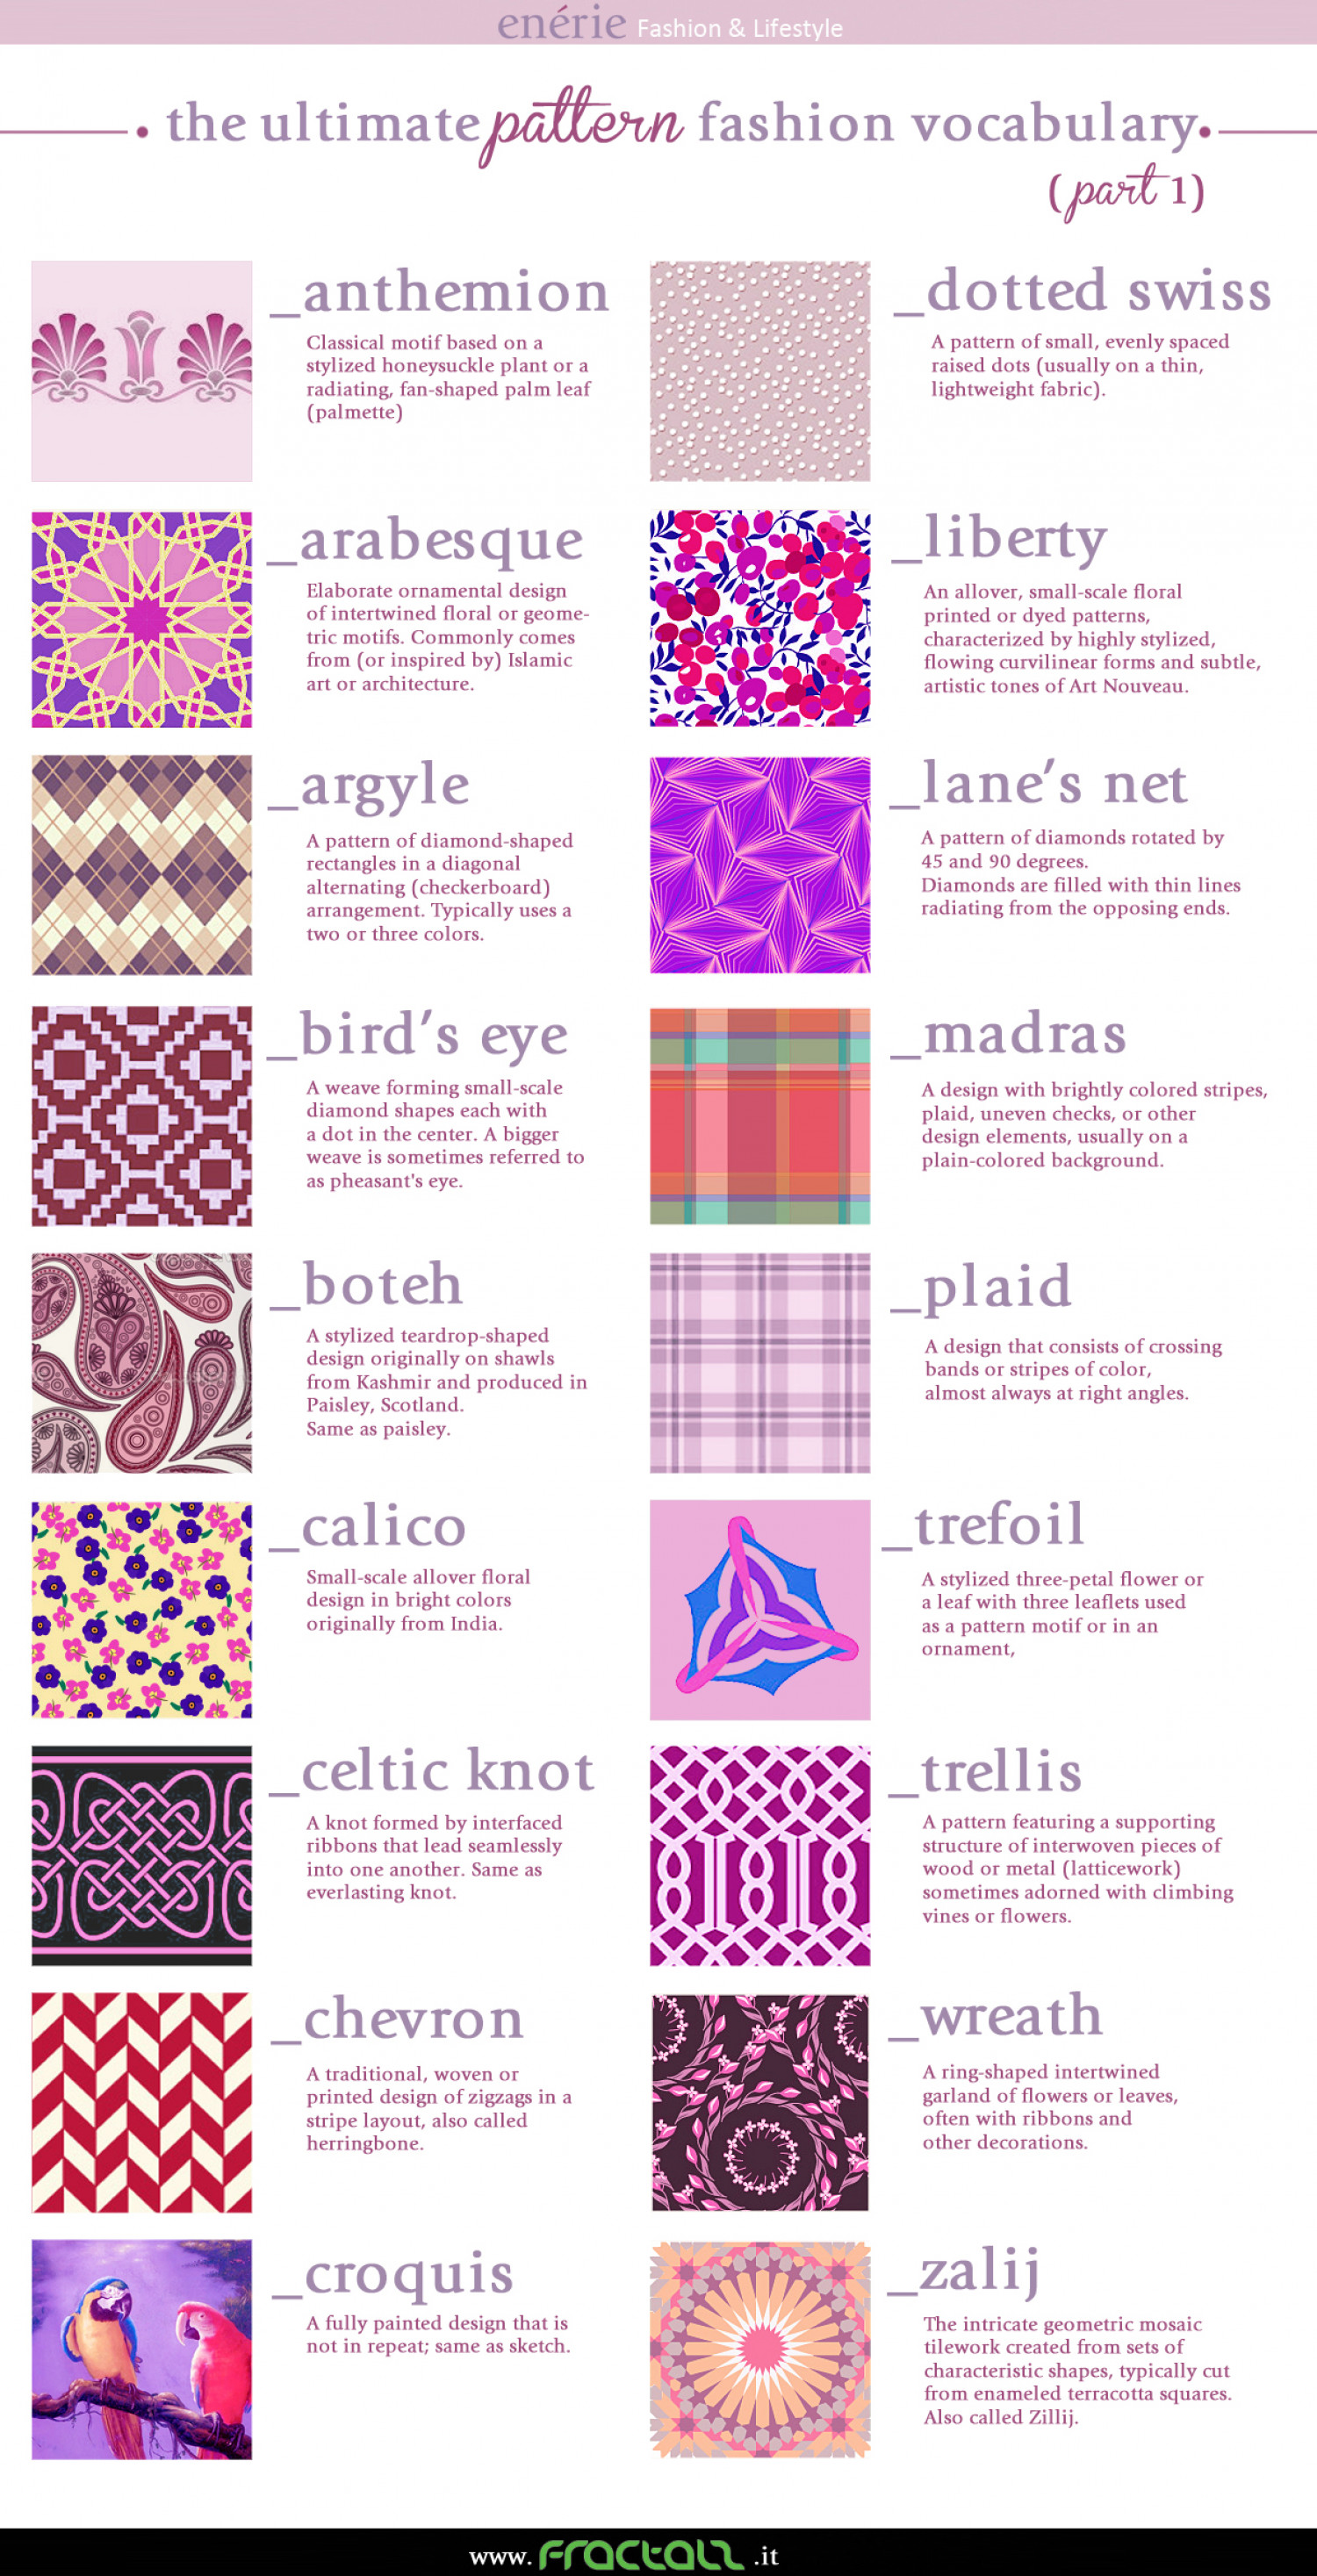 The ultimate Pattern Fashion vocabulary | Visual.ly